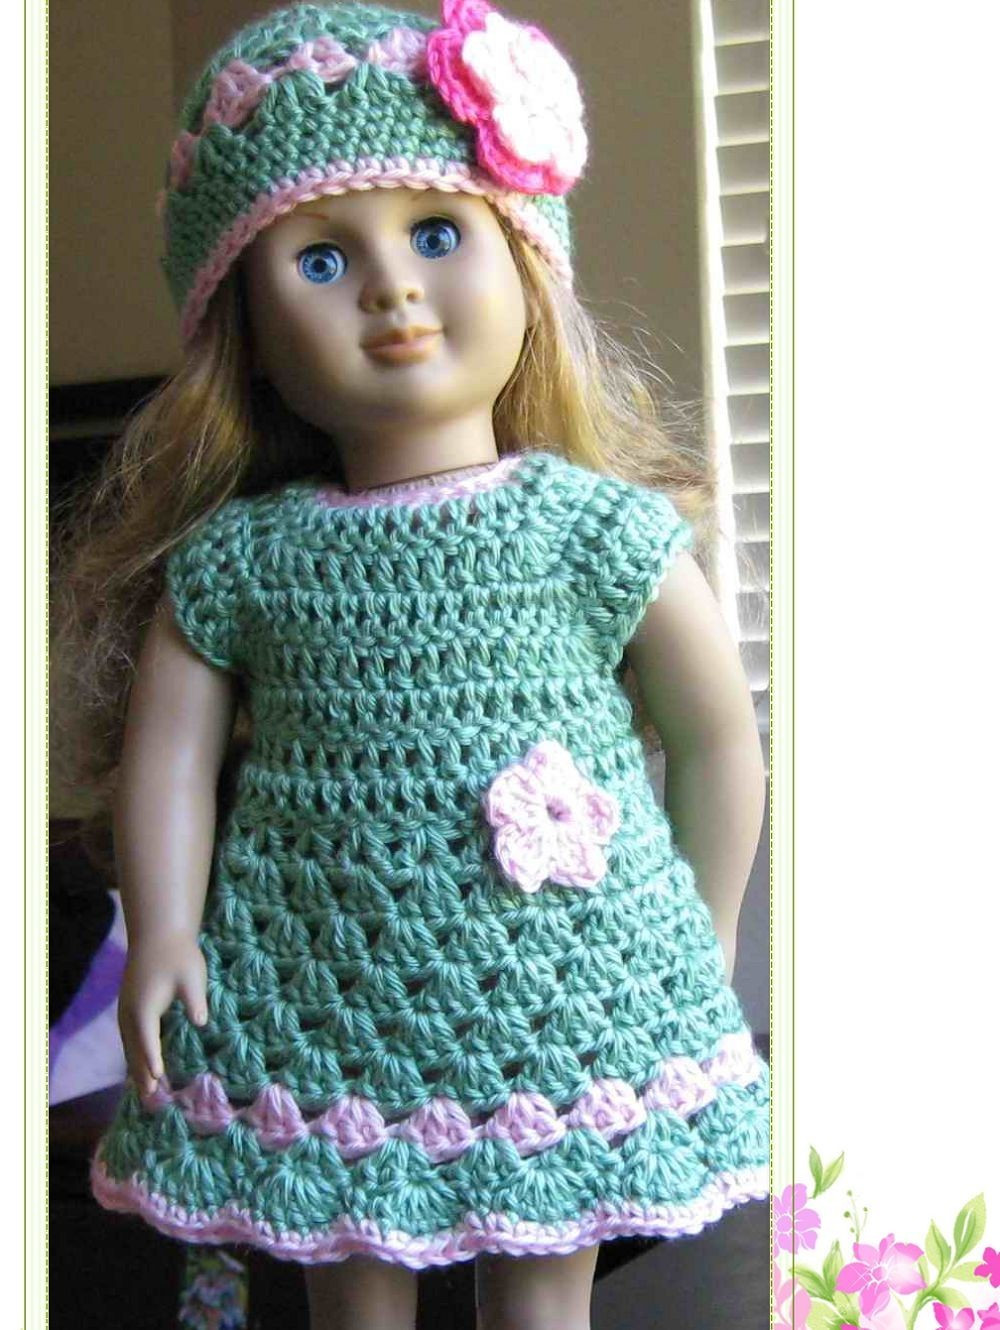 Luxury 7 Best Of Free Printable Doll Clothes Crochet Crochet Clothing Patterns Of Amazing 44 Pics Crochet Clothing Patterns